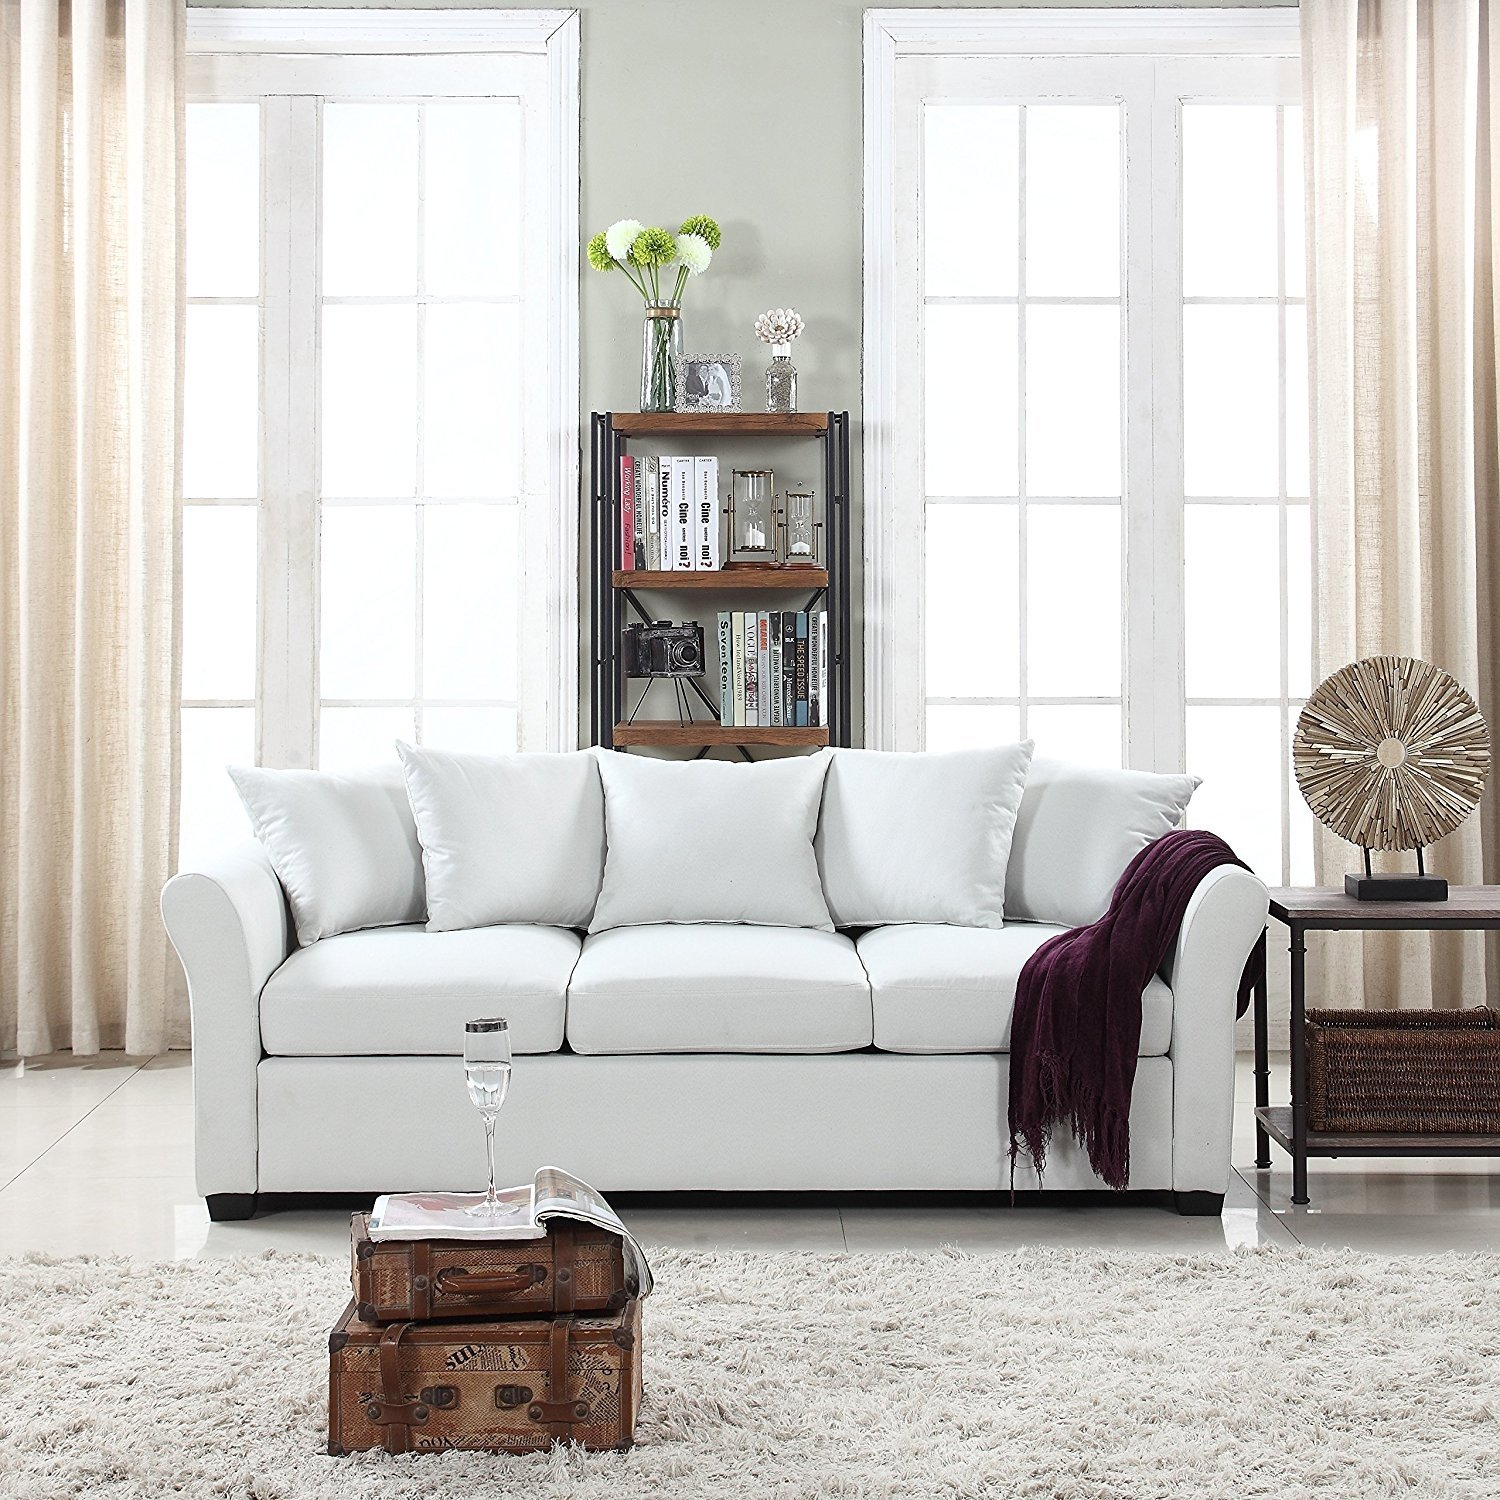 Details About Clic Beige Sofa Comfortable Linen Fabric 3 Seat Couch High Density